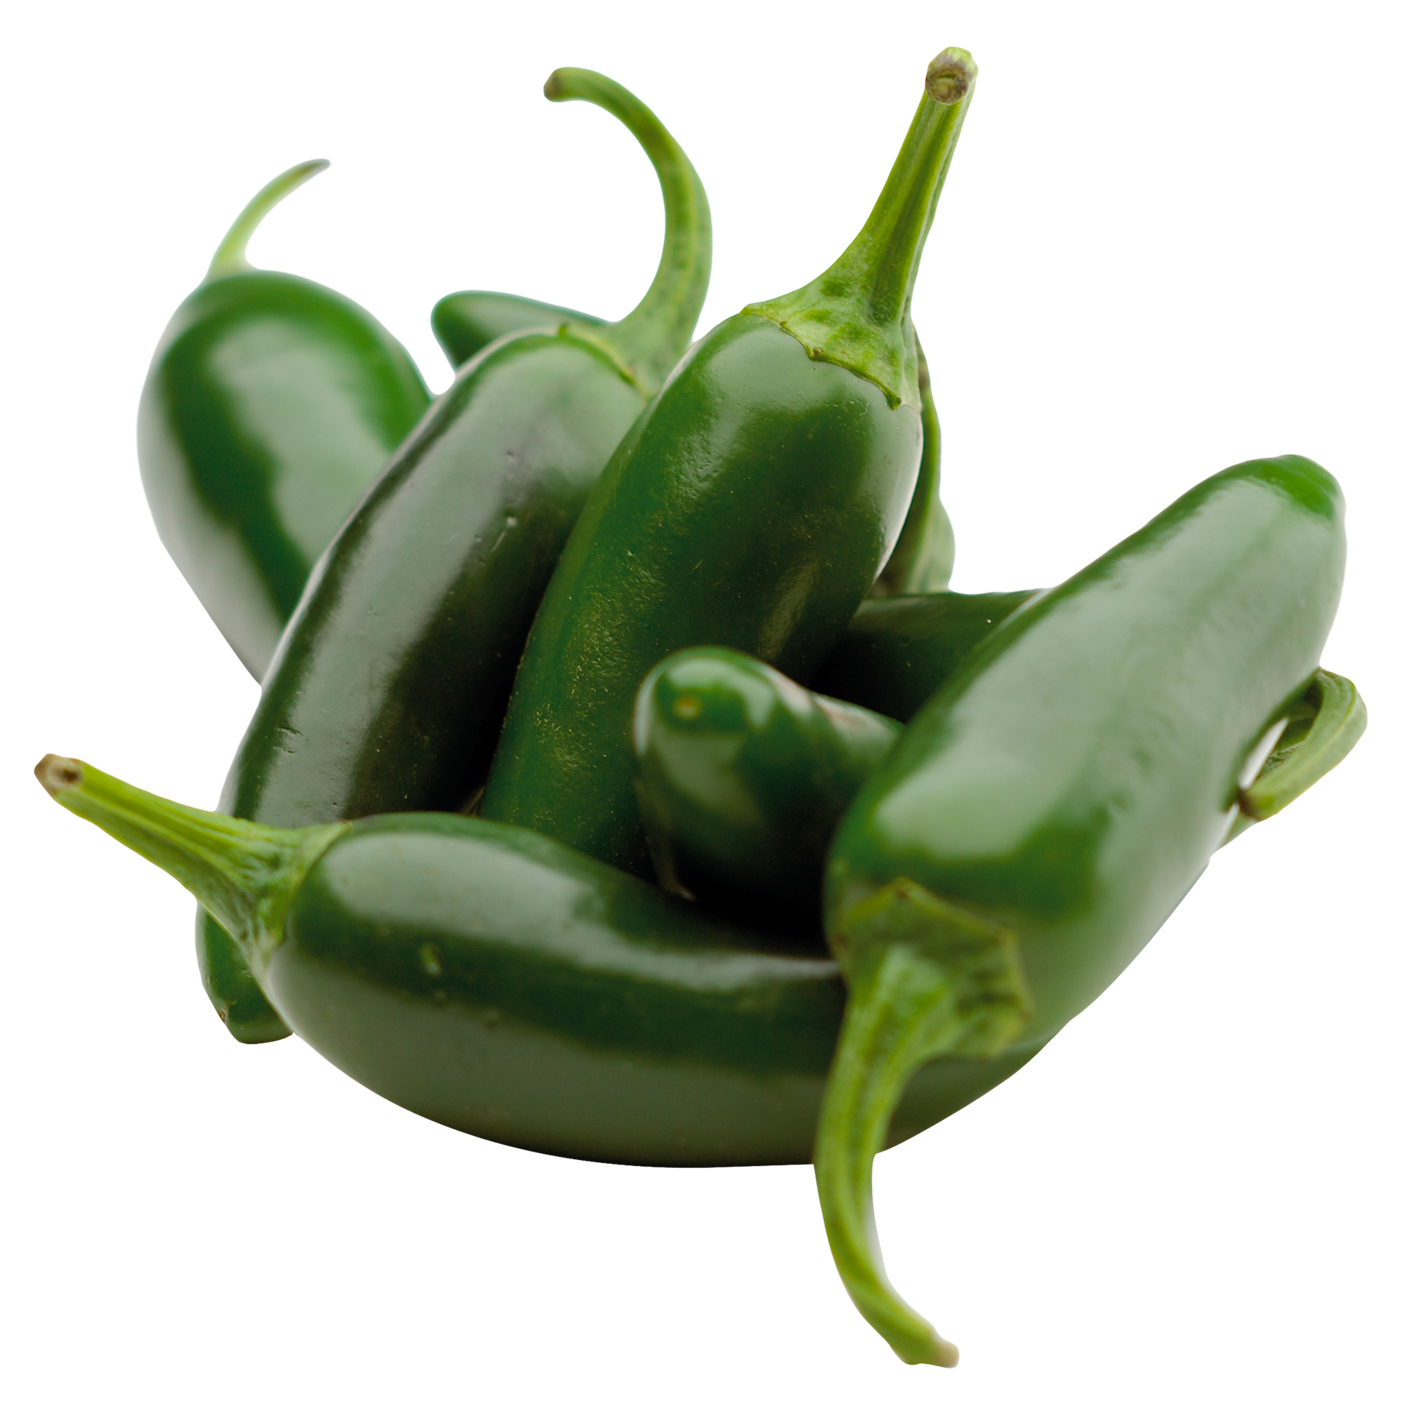 Bell pepper plant png. Green chili image purepng